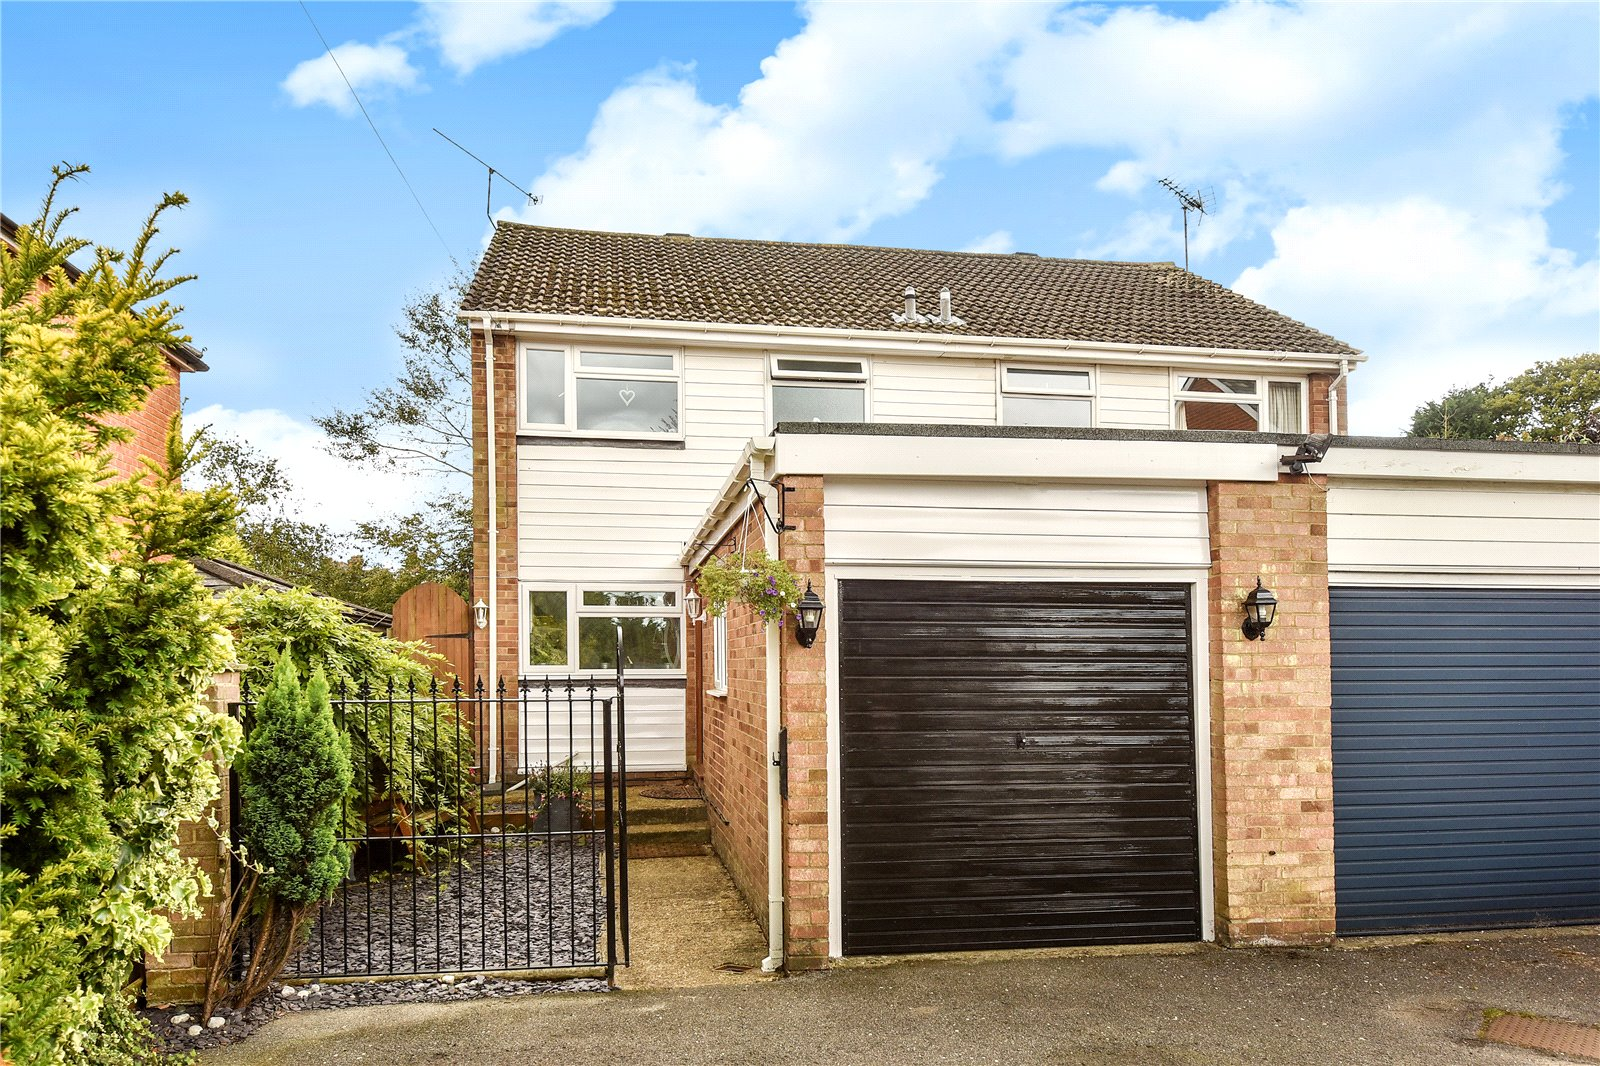 3 Bedrooms Semi Detached House for sale in Guildford Road, Lightwater, Surrey, GU18